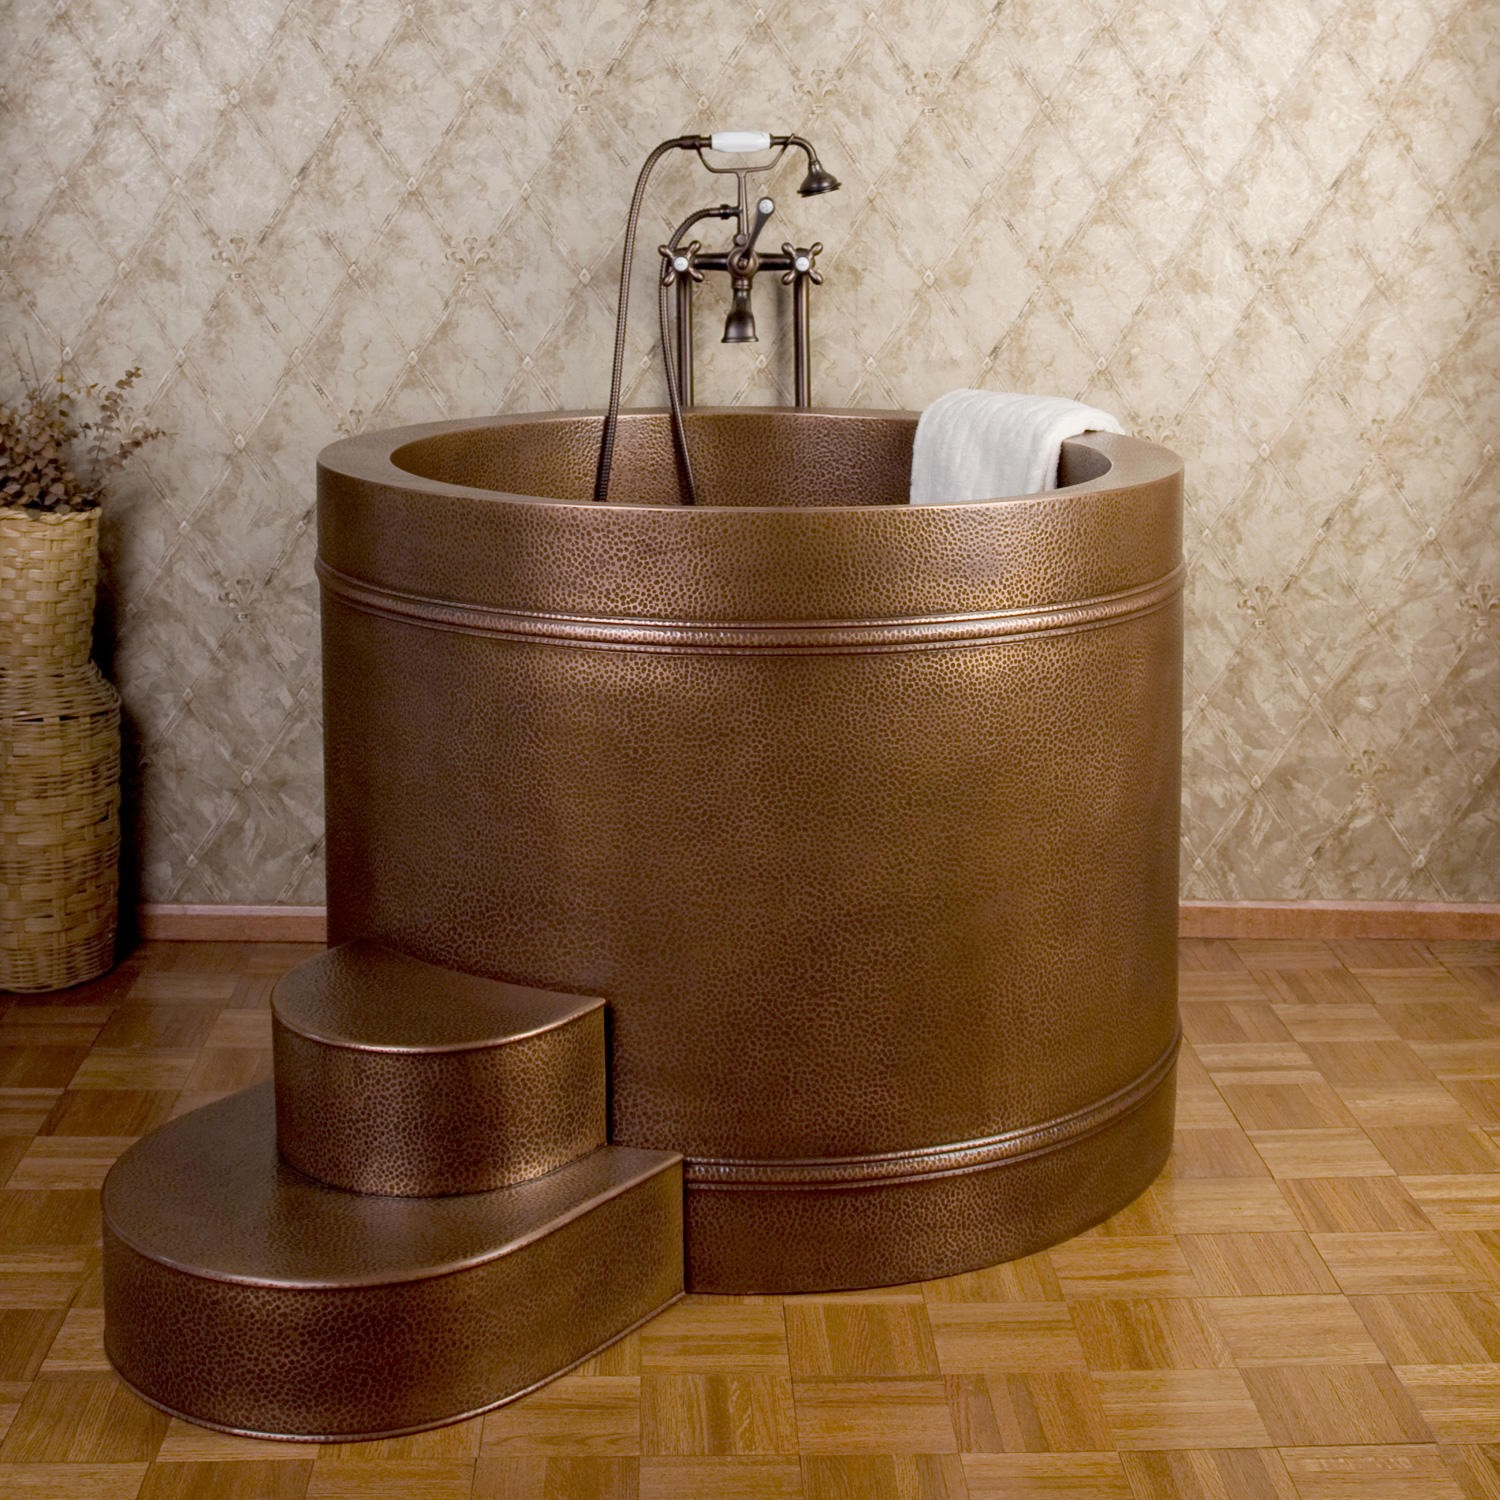 Get Exciting Bathroom Ideas In Asian Style With Small Japanese Soaking Tubs